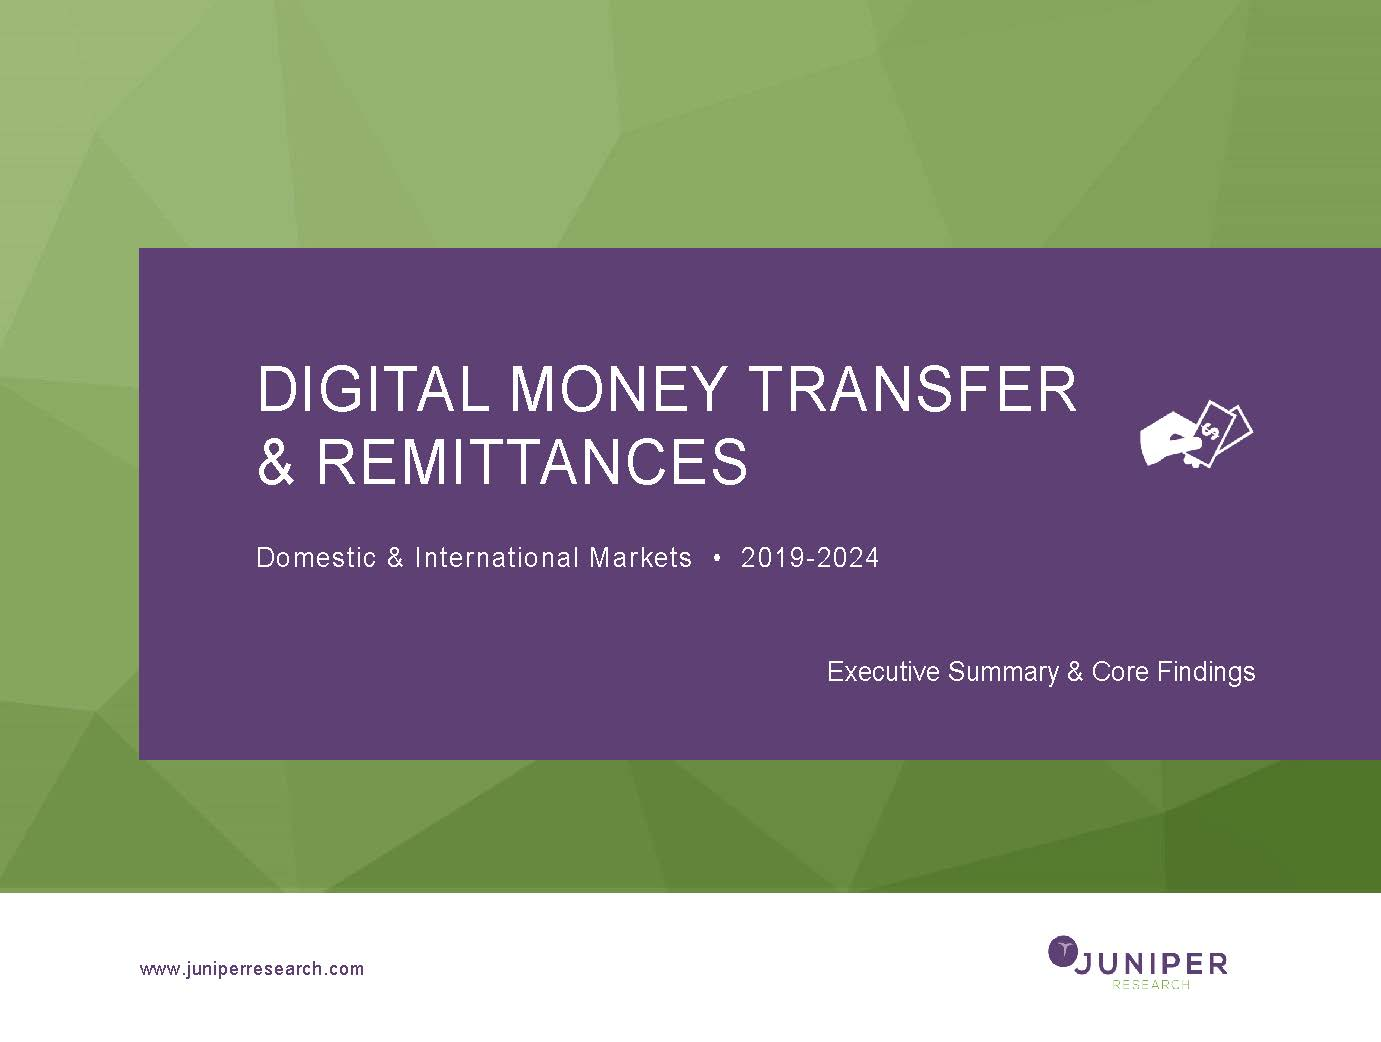 Digital Money Transfer - Executive Summary & Core Findings 2019-2024